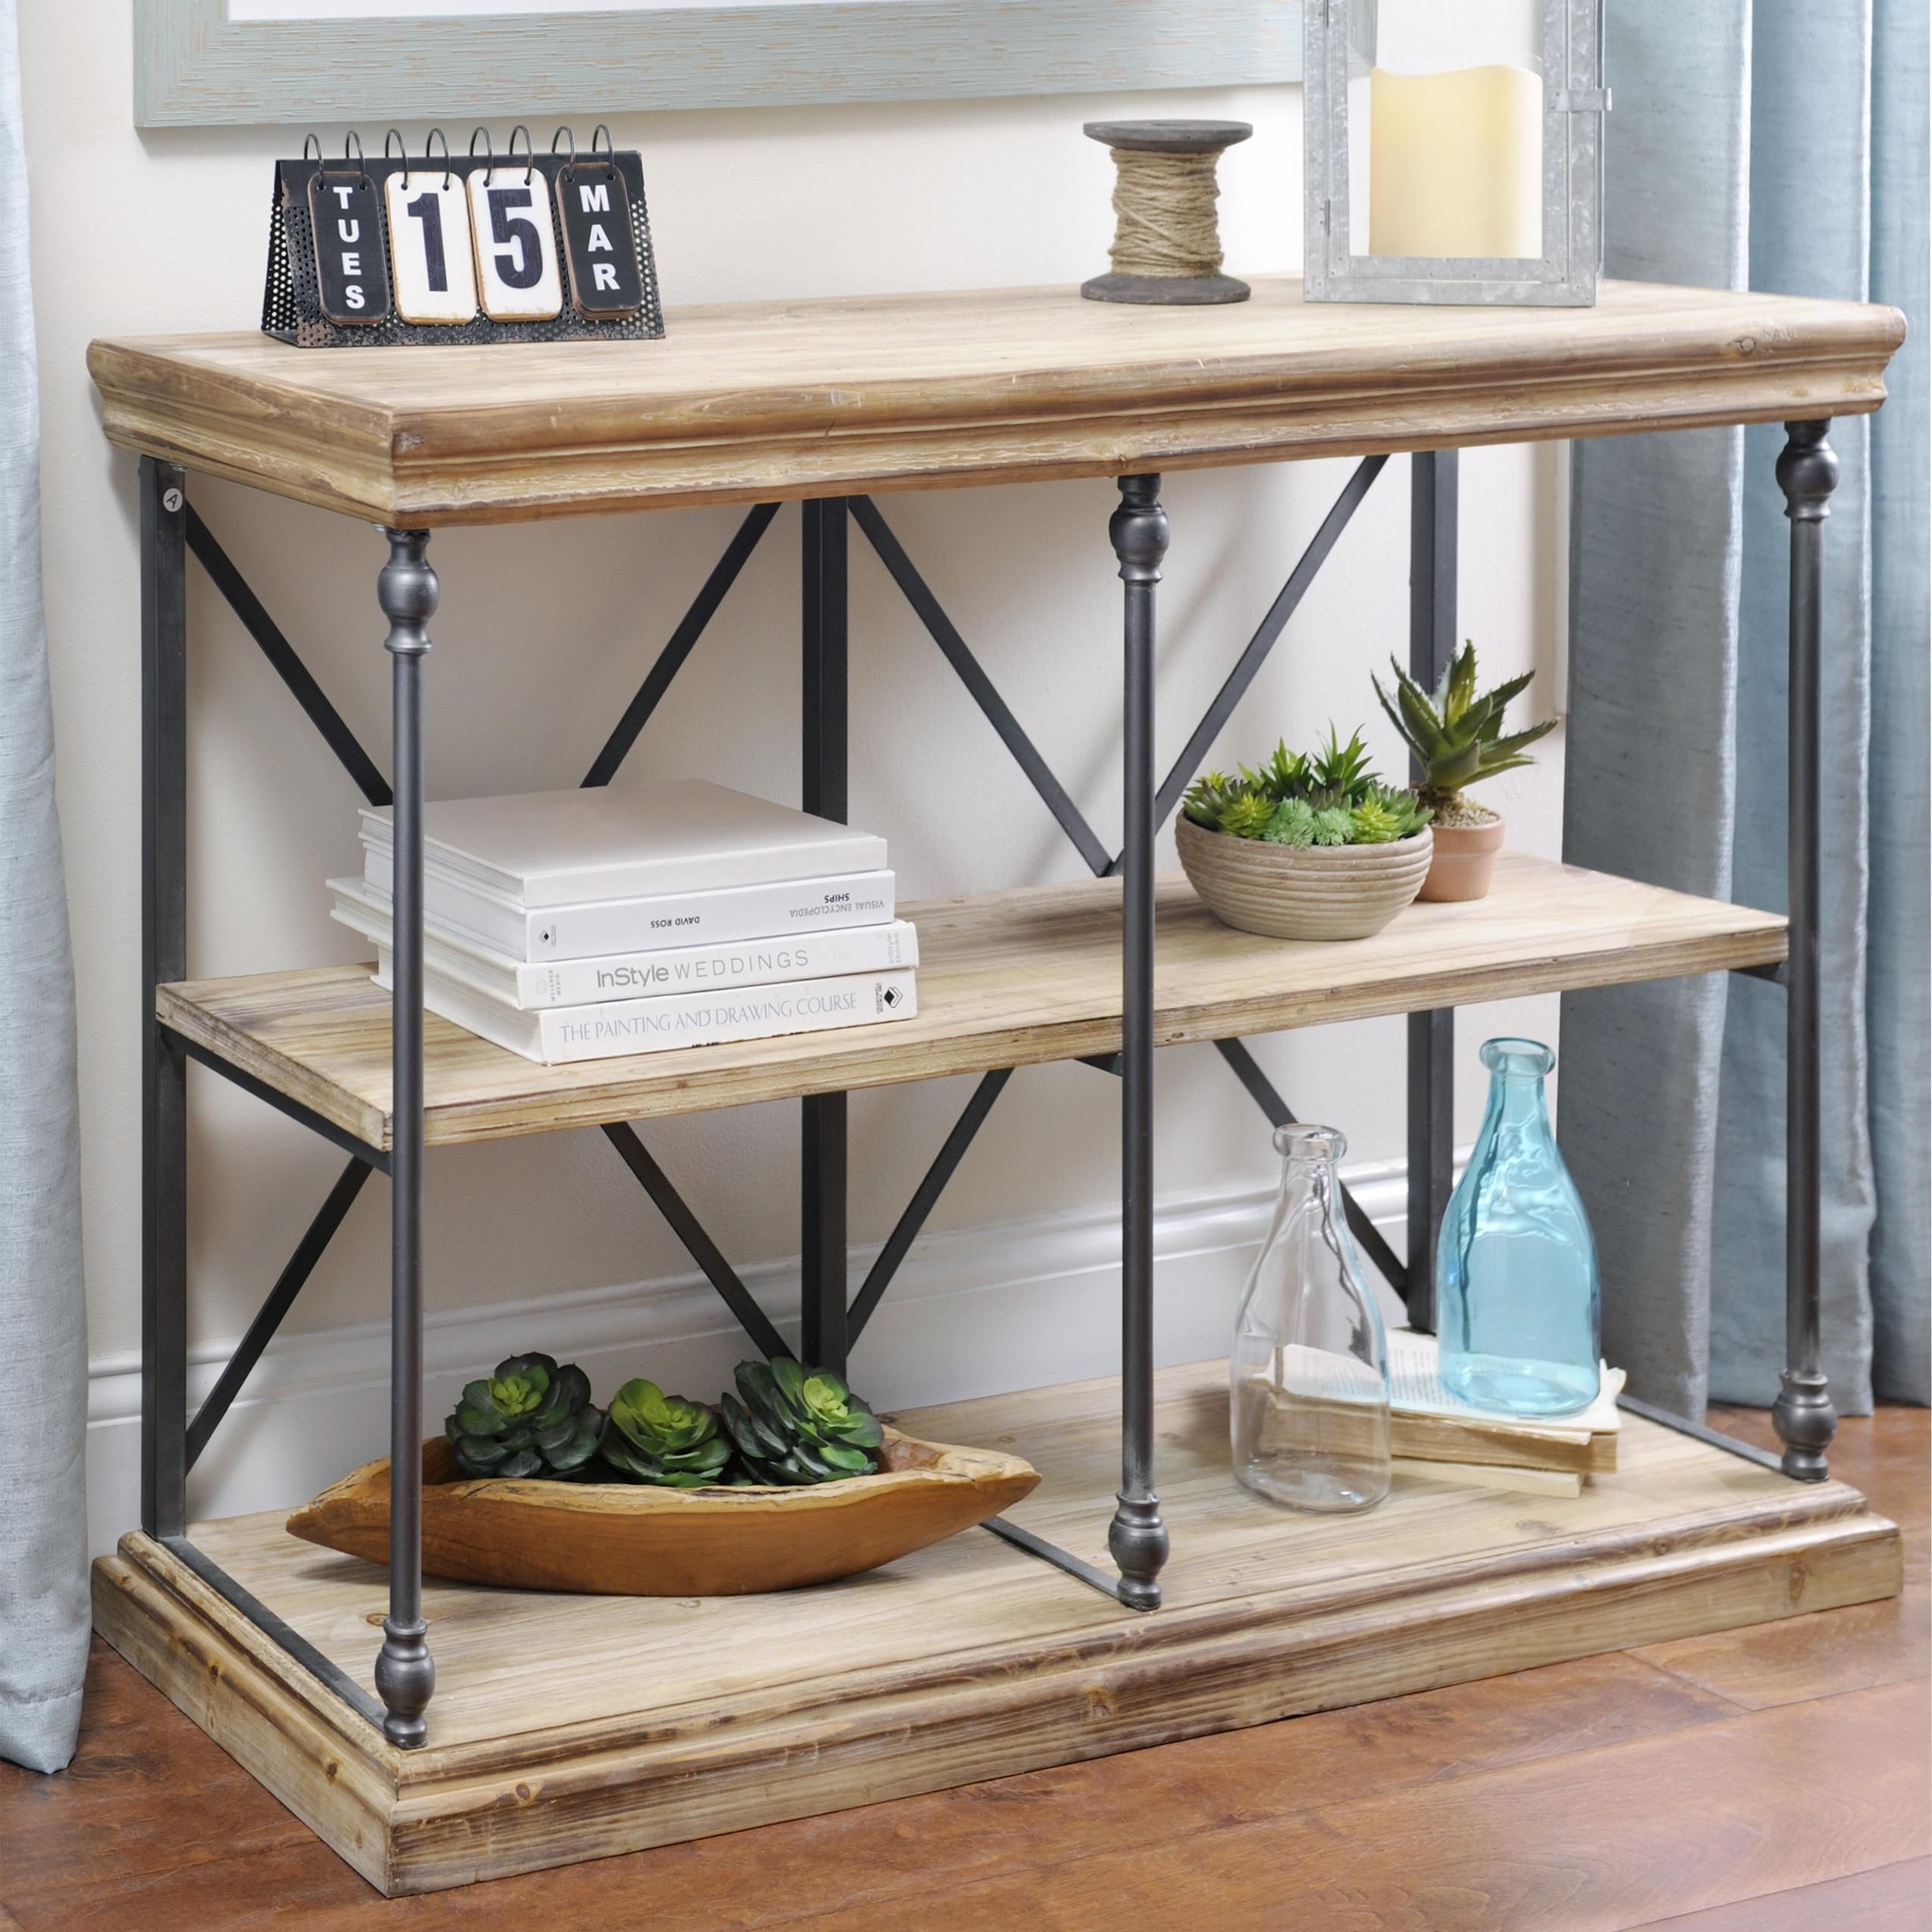 Sonoma two tier console table reclaimed wood shelves for Two tier desk ikea